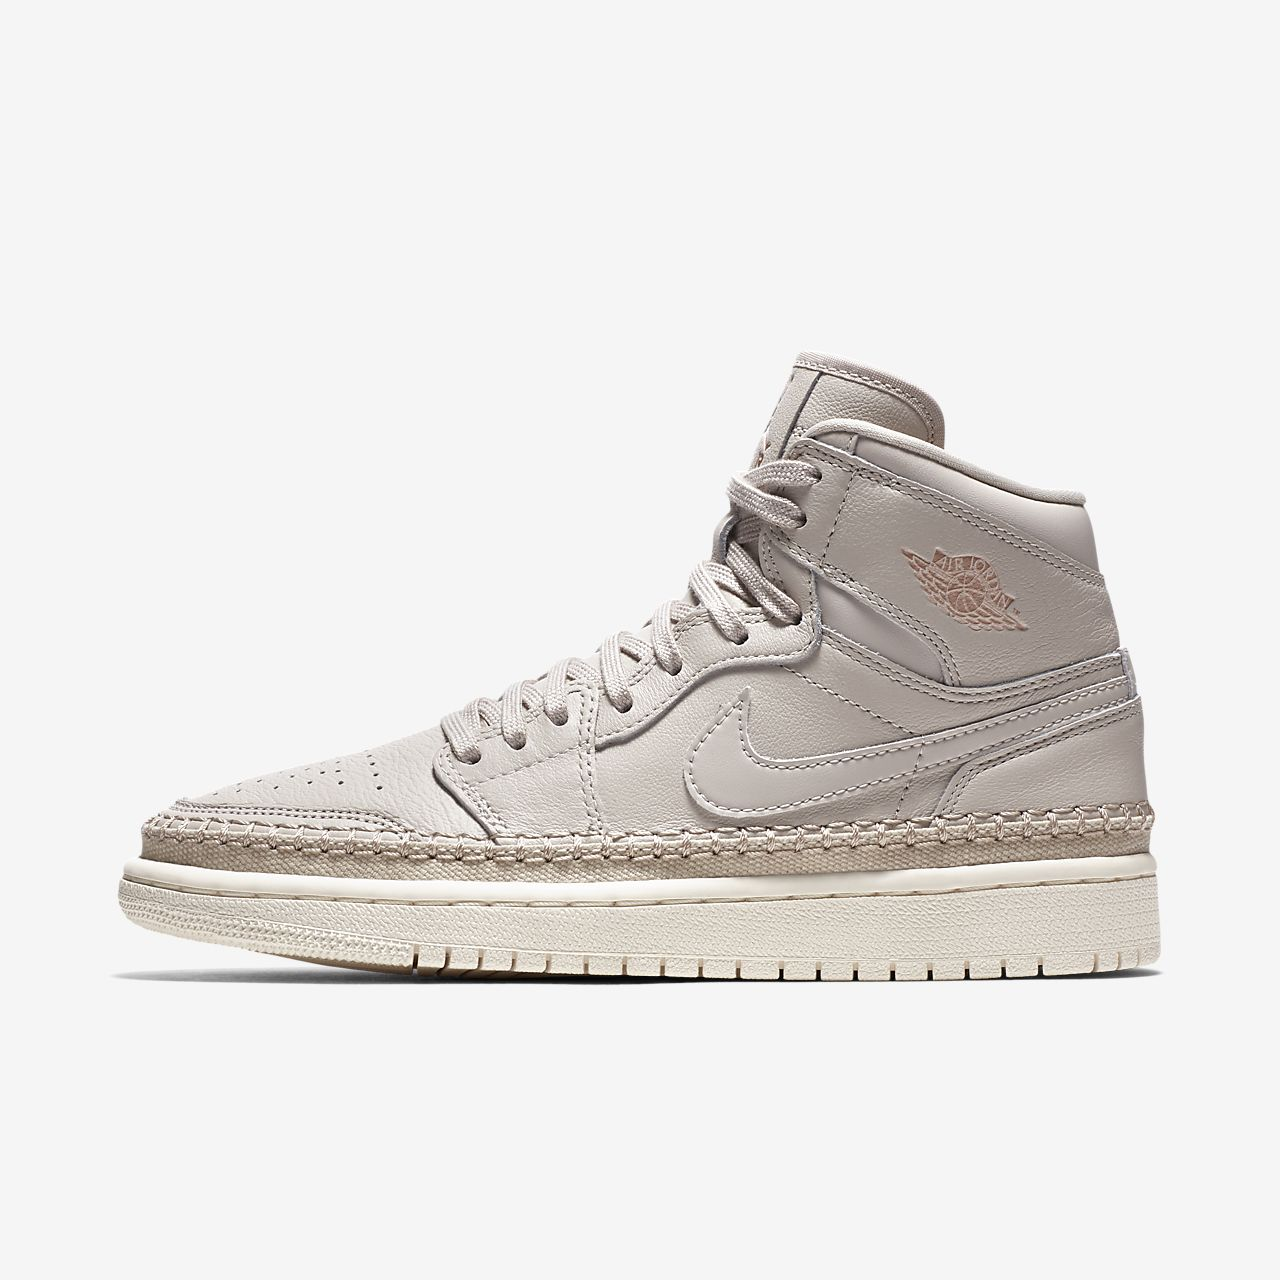 Nike AIR JORDAN 1 RETRO PREMIUM SNEAKERS Release Dates Cheap Online Pictures Sale Online Discount Supply Wholesale Price Cheap Online Factory Price Mh5bXACWe